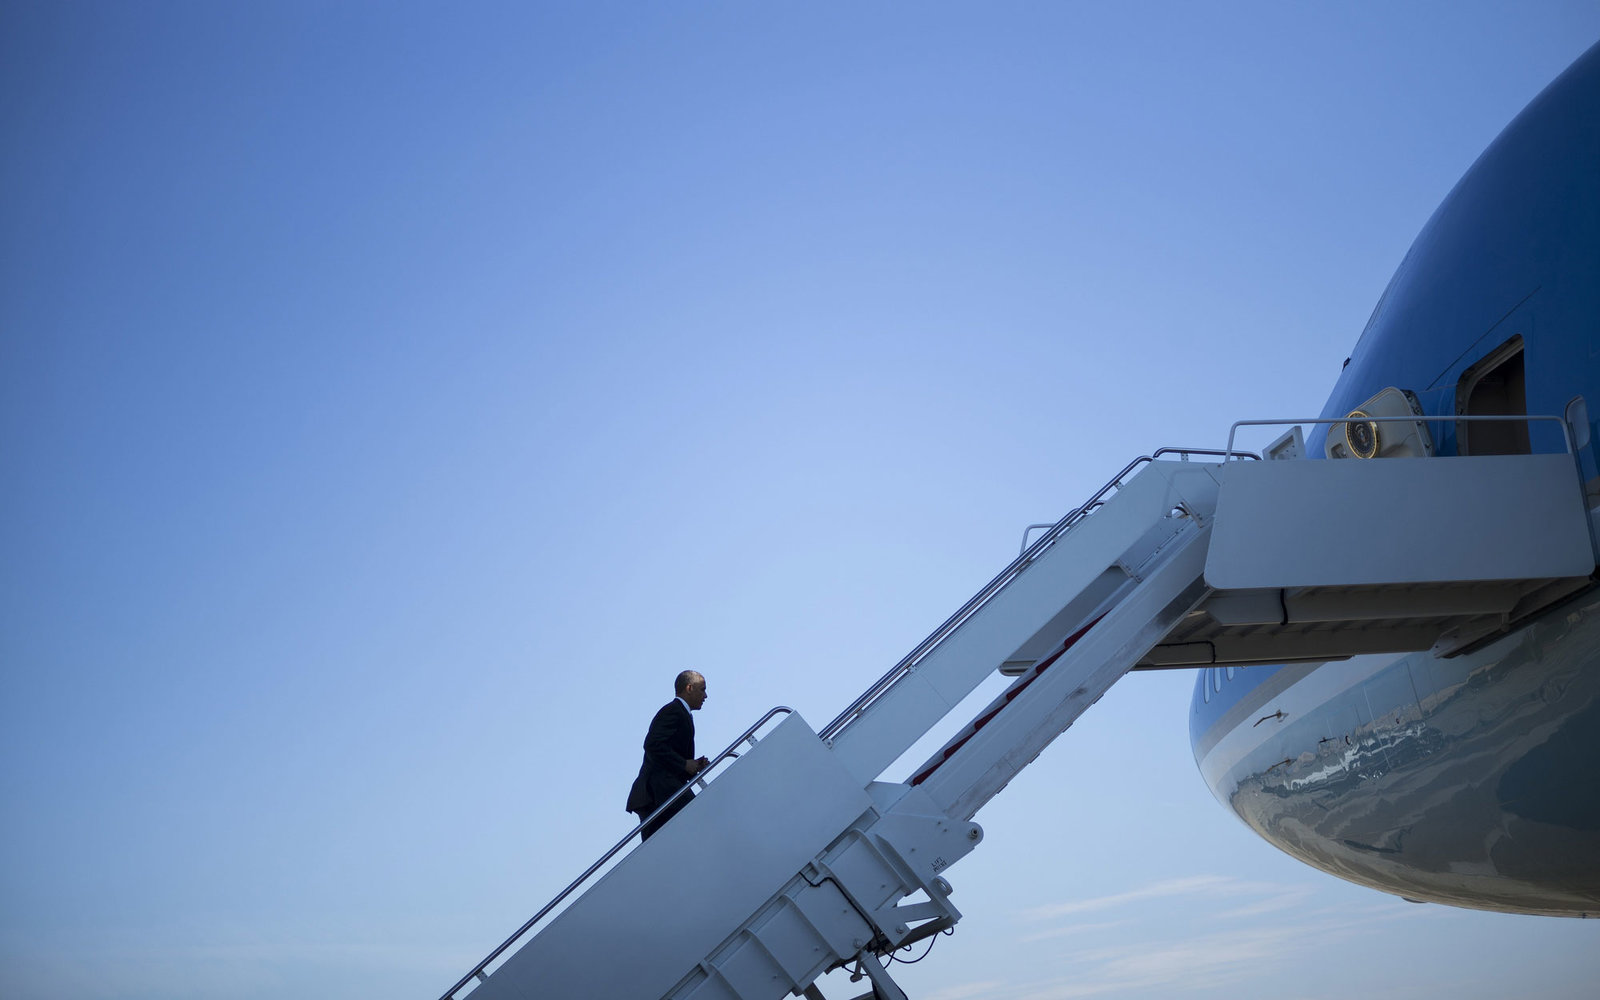 President Barack Obama boards Air Force One